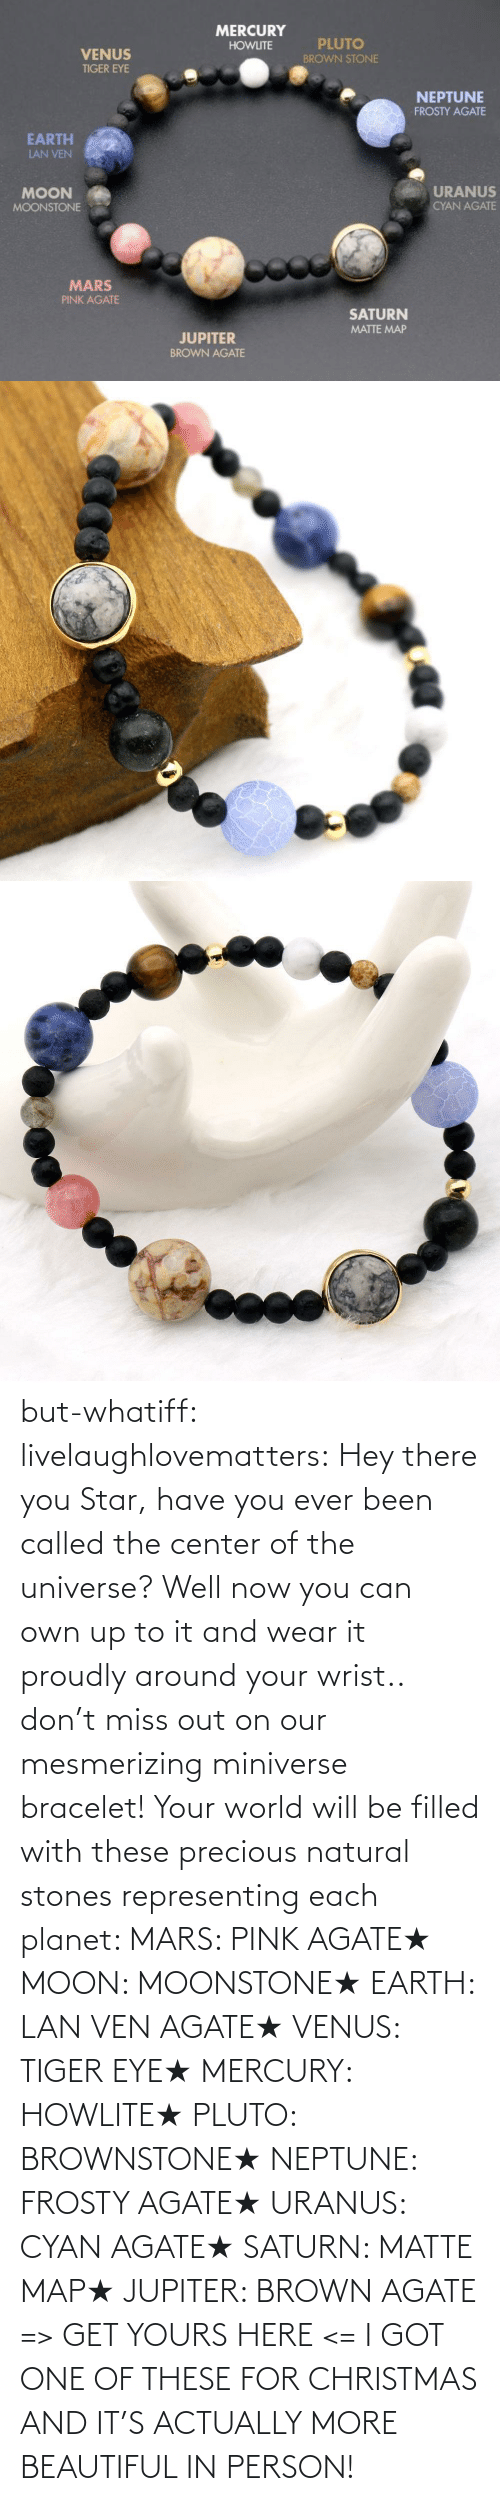 Pink: but-whatiff:  livelaughlovematters:  Hey there you Star, have you ever been called the center of the universe? Well now you can own up to it and wear it proudly around your wrist.. don't miss out on our mesmerizing miniverse bracelet! Your world will be filled with these precious natural stones representing each planet:  MARS: PINK AGATE★ MOON: MOONSTONE★ EARTH: LAN VEN AGATE★ VENUS: TIGER EYE★ MERCURY: HOWLITE★ PLUTO: BROWNSTONE★ NEPTUNE: FROSTY AGATE★ URANUS: CYAN AGATE★ SATURN: MATTE MAP★ JUPITER: BROWN AGATE => GET YOURS HERE <=  I GOT ONE OF THESE FOR CHRISTMAS AND IT'S ACTUALLY MORE BEAUTIFUL IN PERSON!